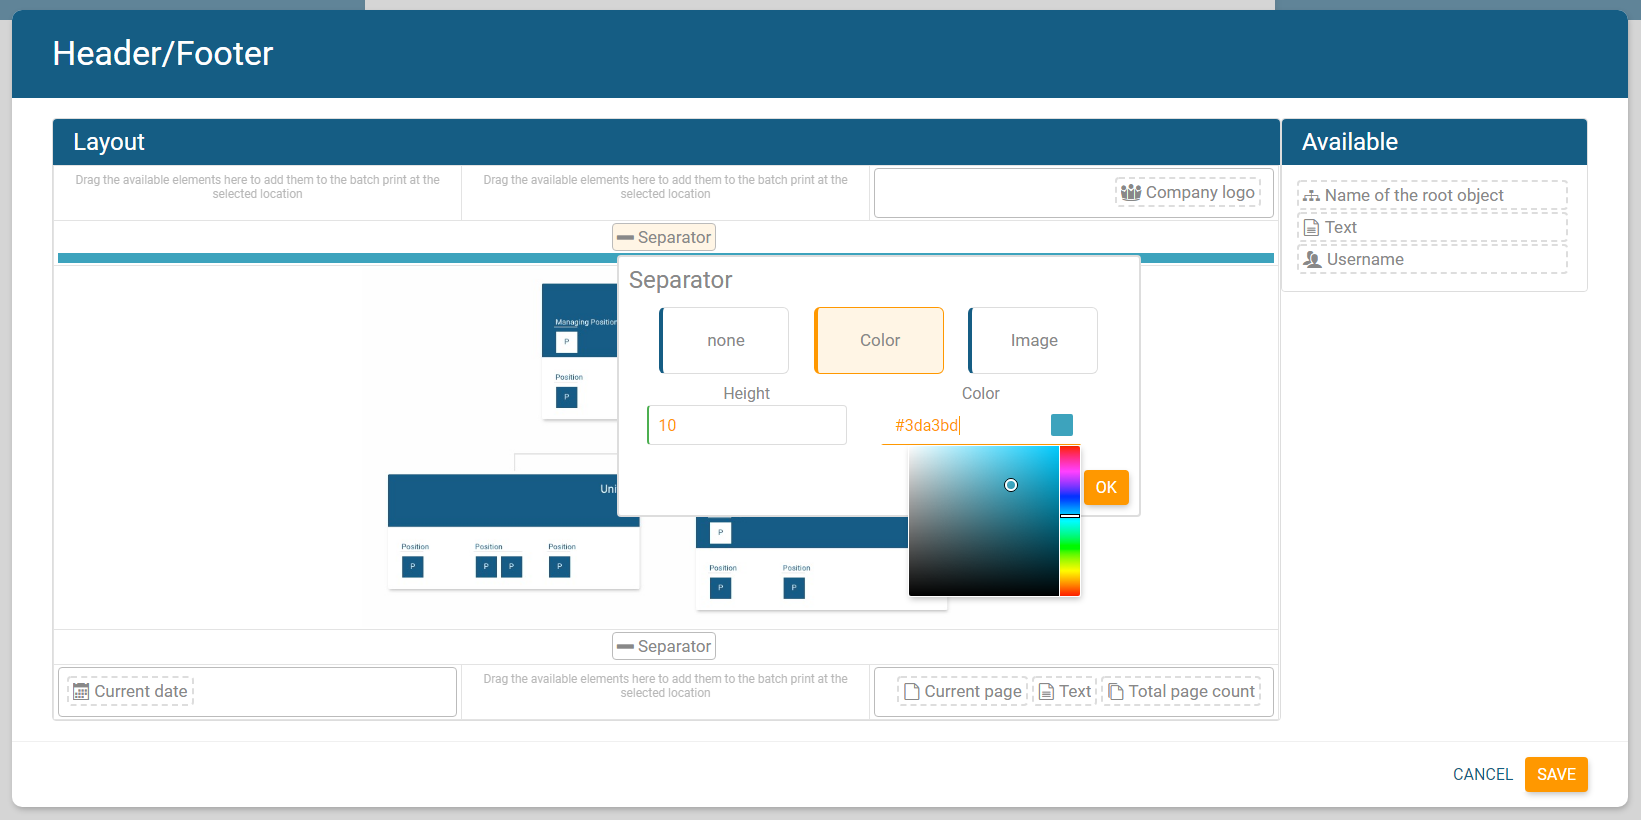 Adjust colors of header/footer in orginio to fit your corporate design